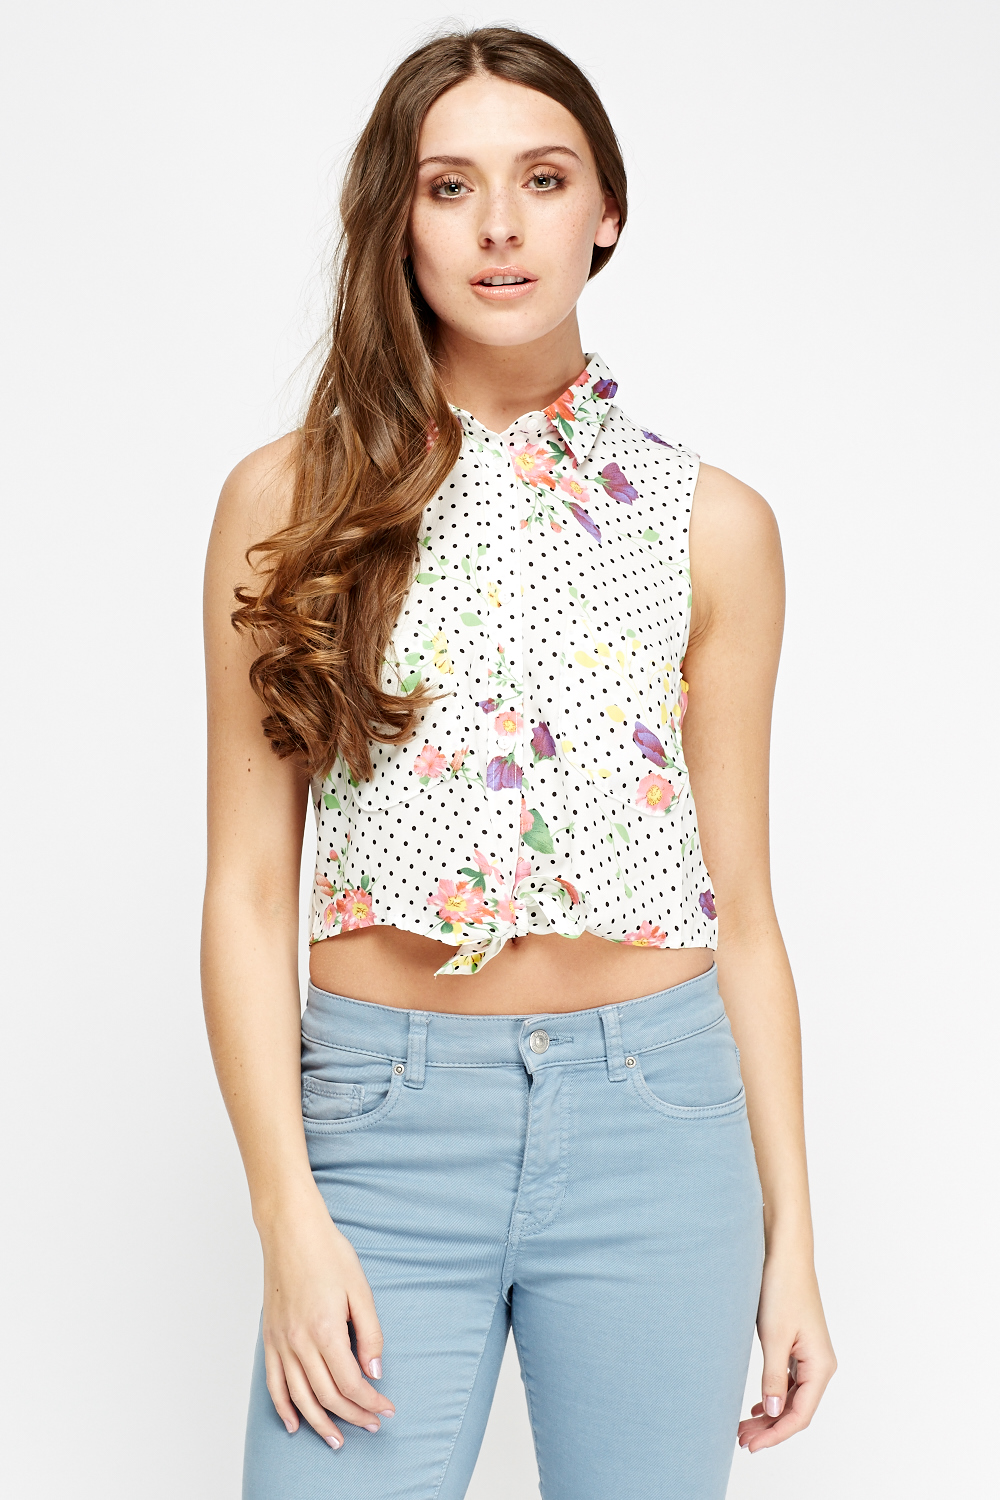 008a1ac8d3f7d7 Floral Tie Up Knot Top - White - Just £5